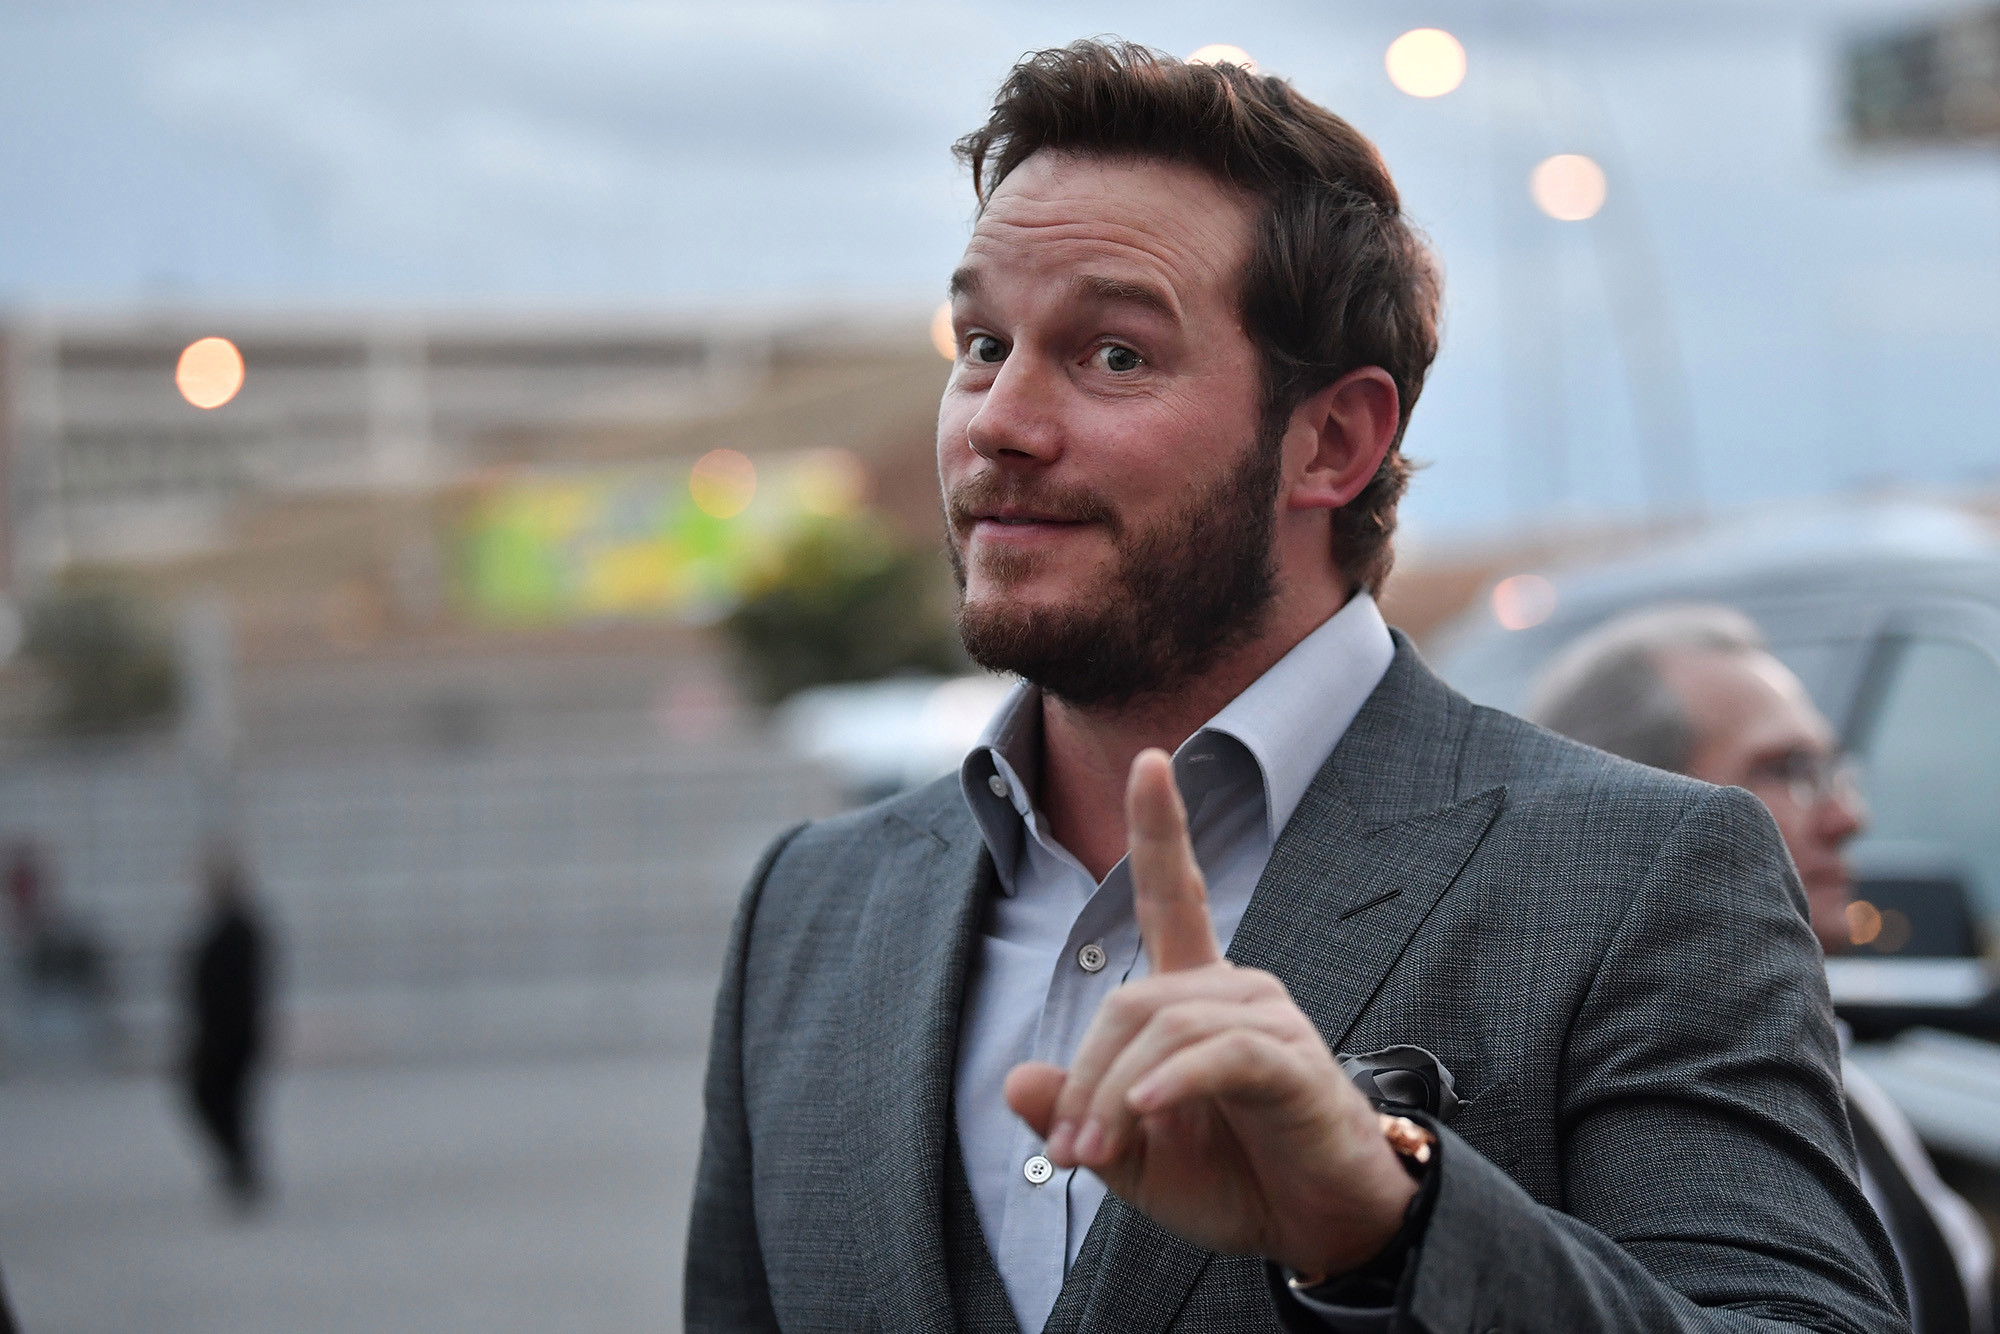 Latest 'illegal' Avengers Endgame online stream comes from Chris Pratt's own Instagram